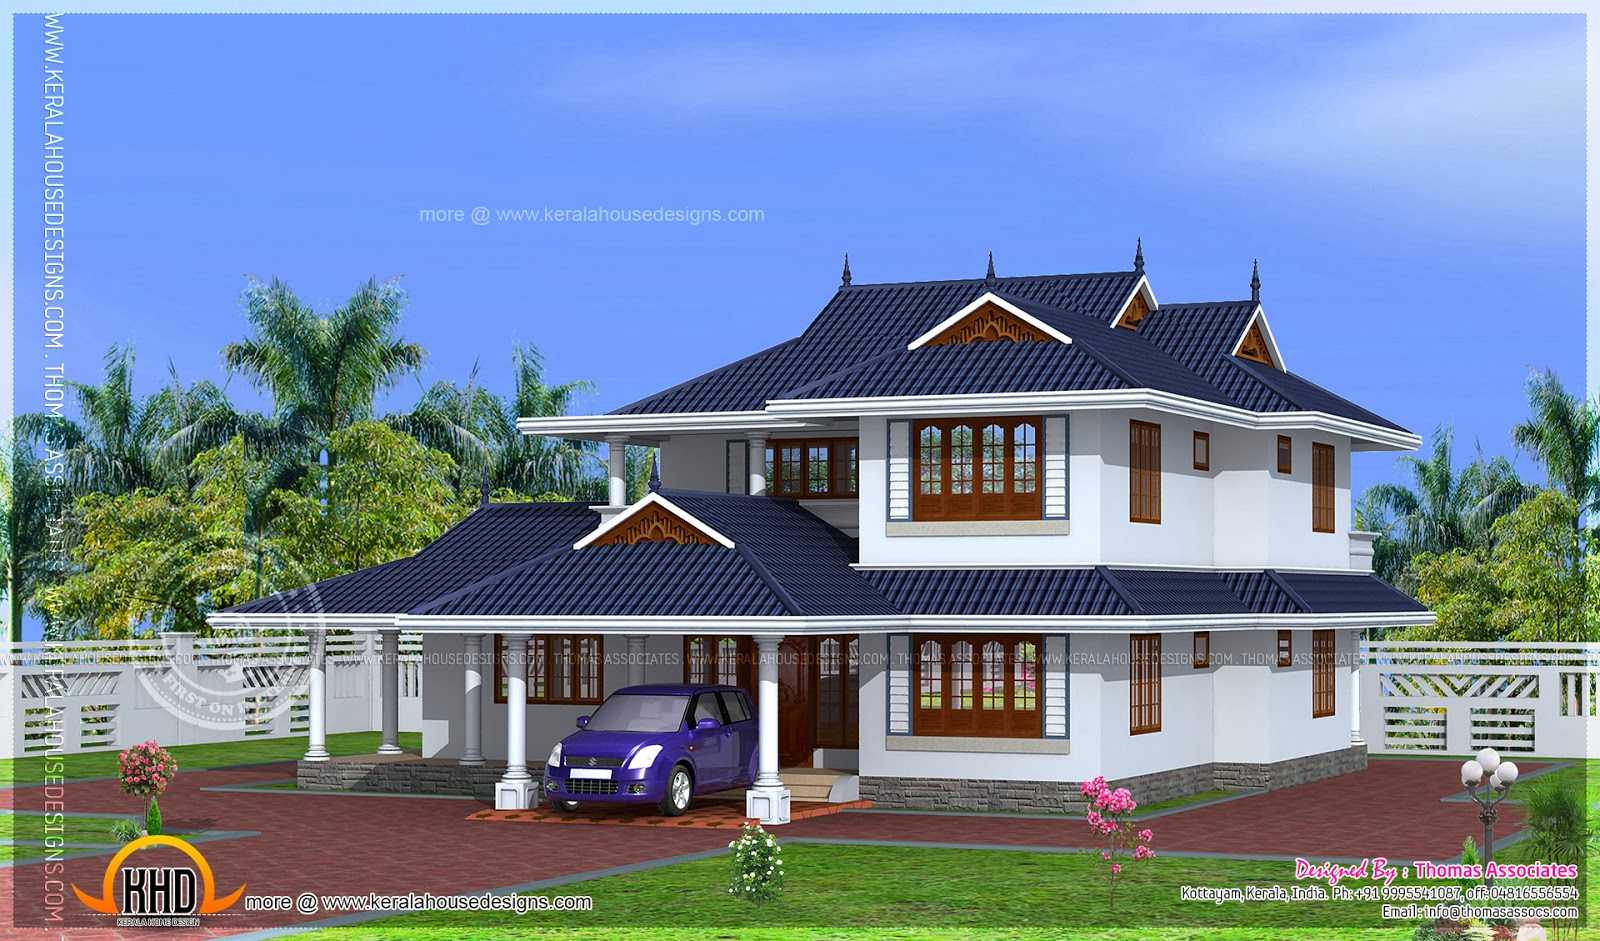 Kerala house models joy studio design gallery best design for Kerala new house models